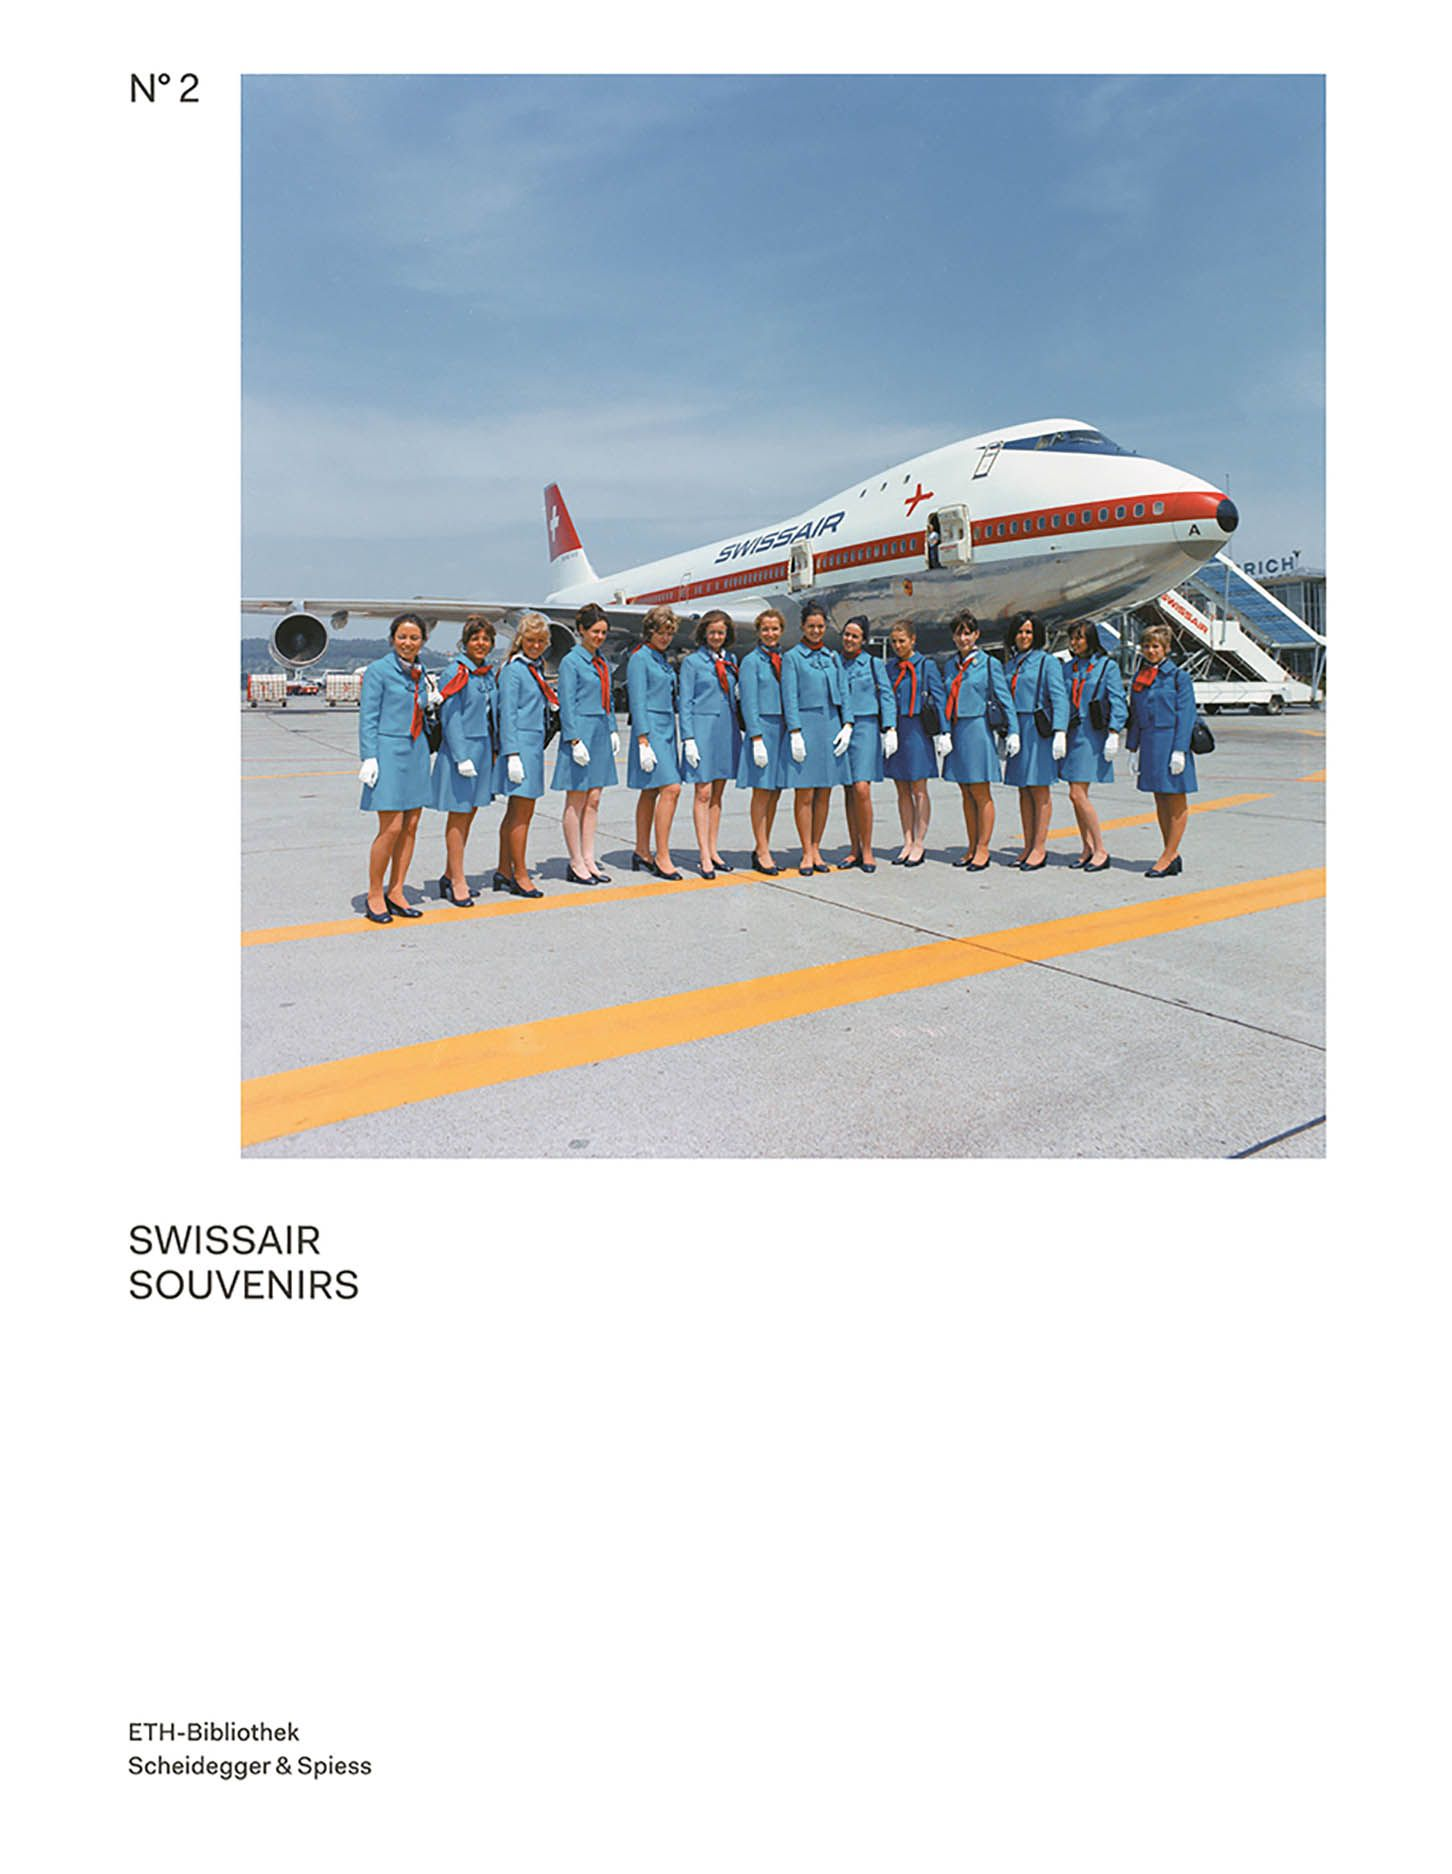 Swissair Souvenirs: The Swissair Photo Archive